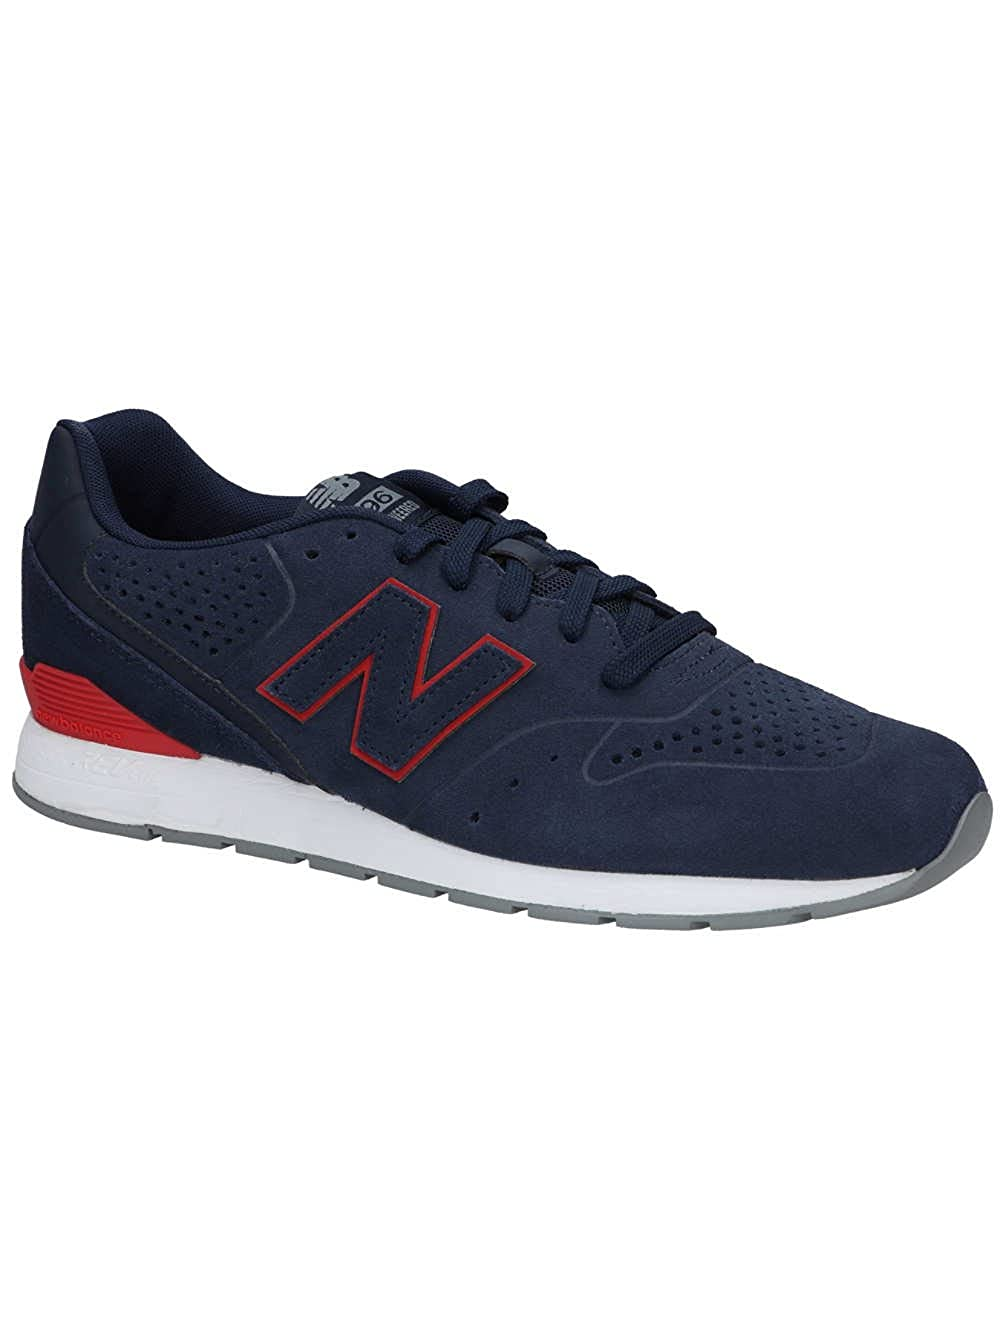 buy online dad17 f7750 New Balance 996 Re-Engineered Trainers Blue